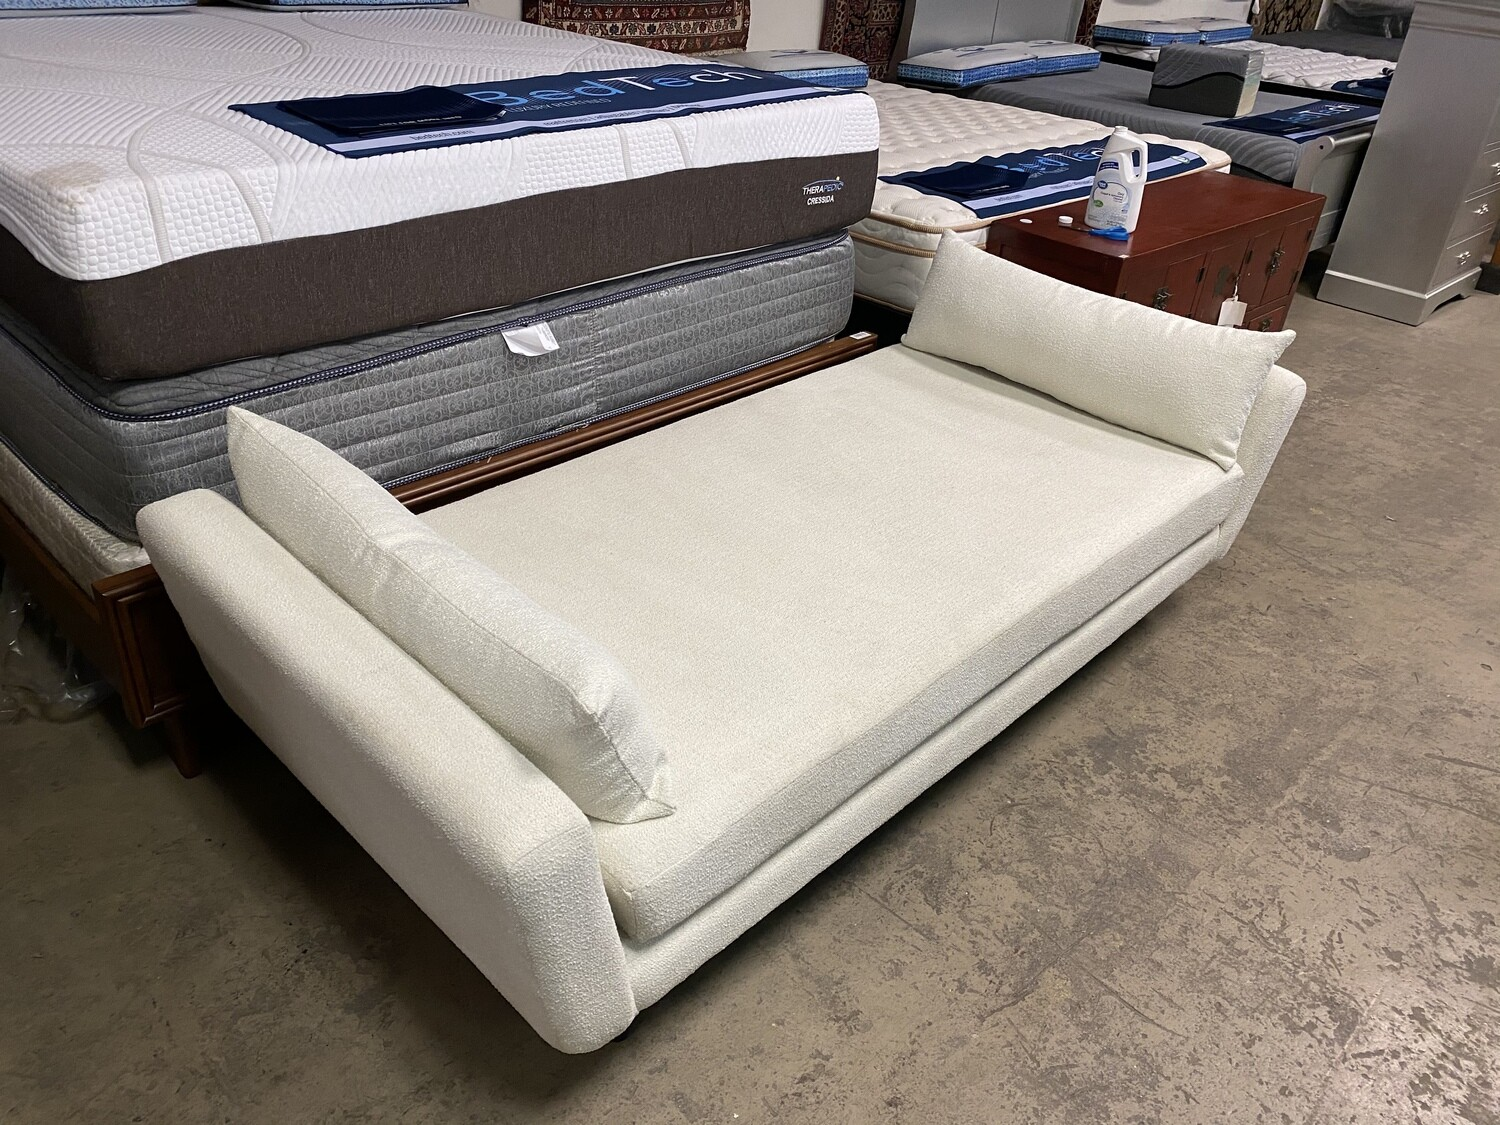 JB Hughes Daybed (Tussah Blizzard) 2136(Minor Damage)